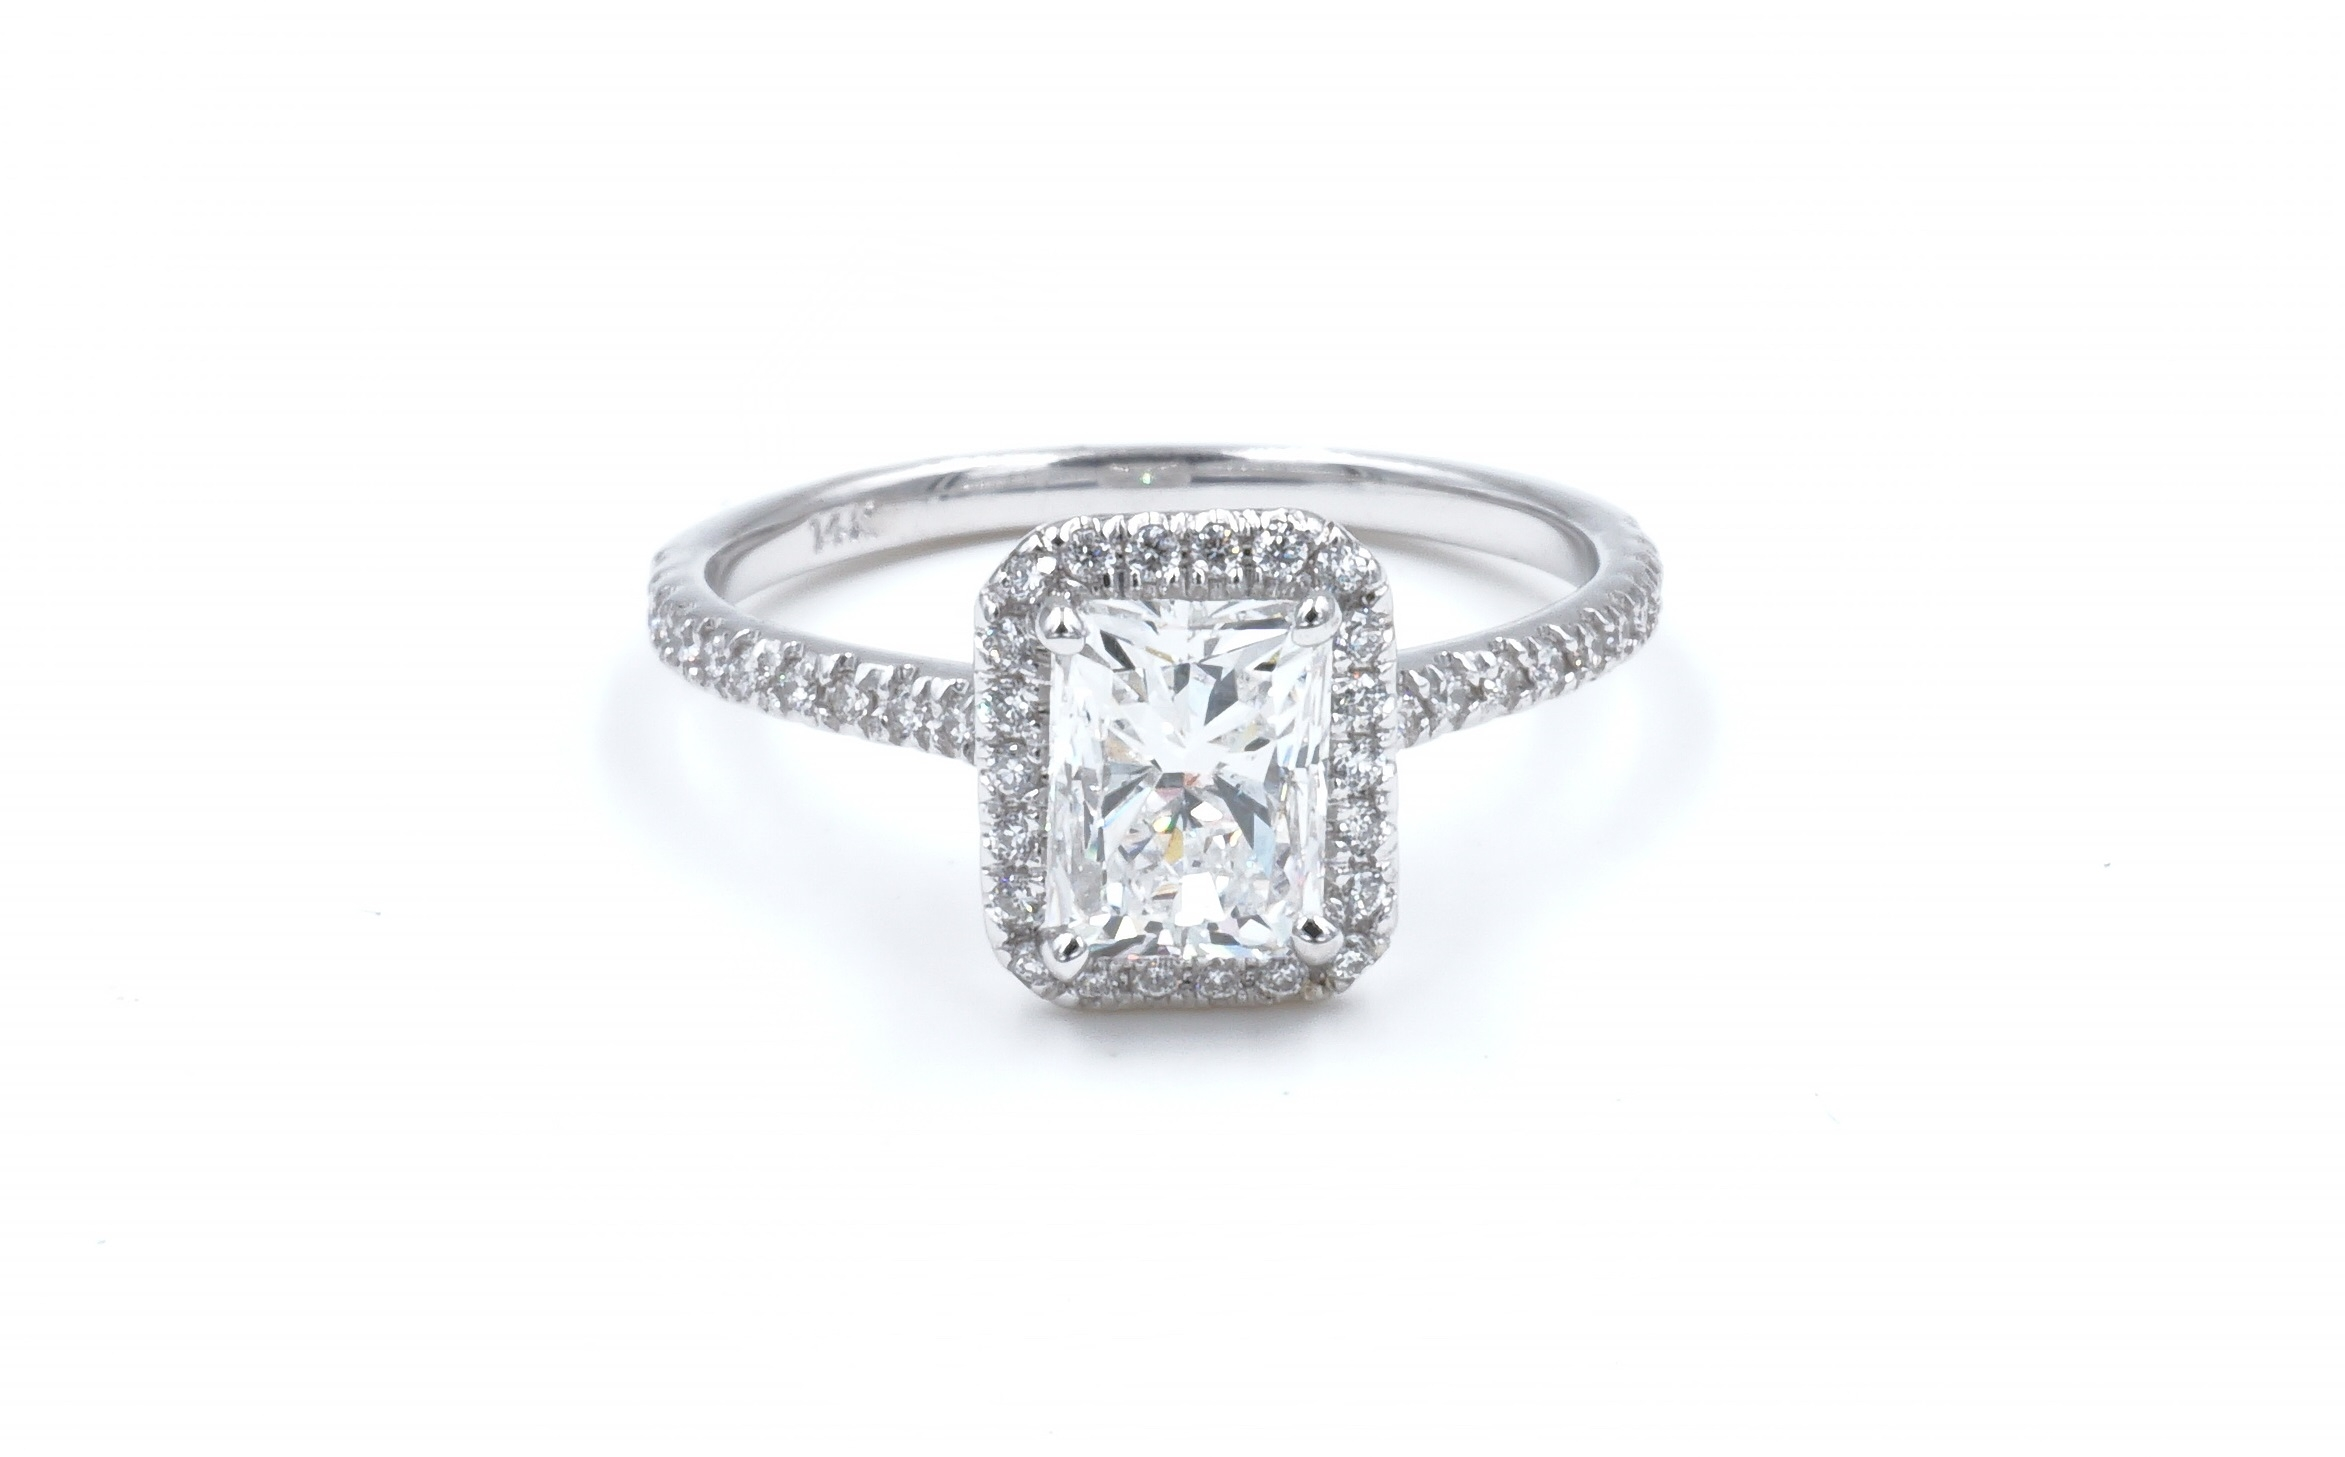 Halo Style Radiant Cut Diamond Engagement Ring